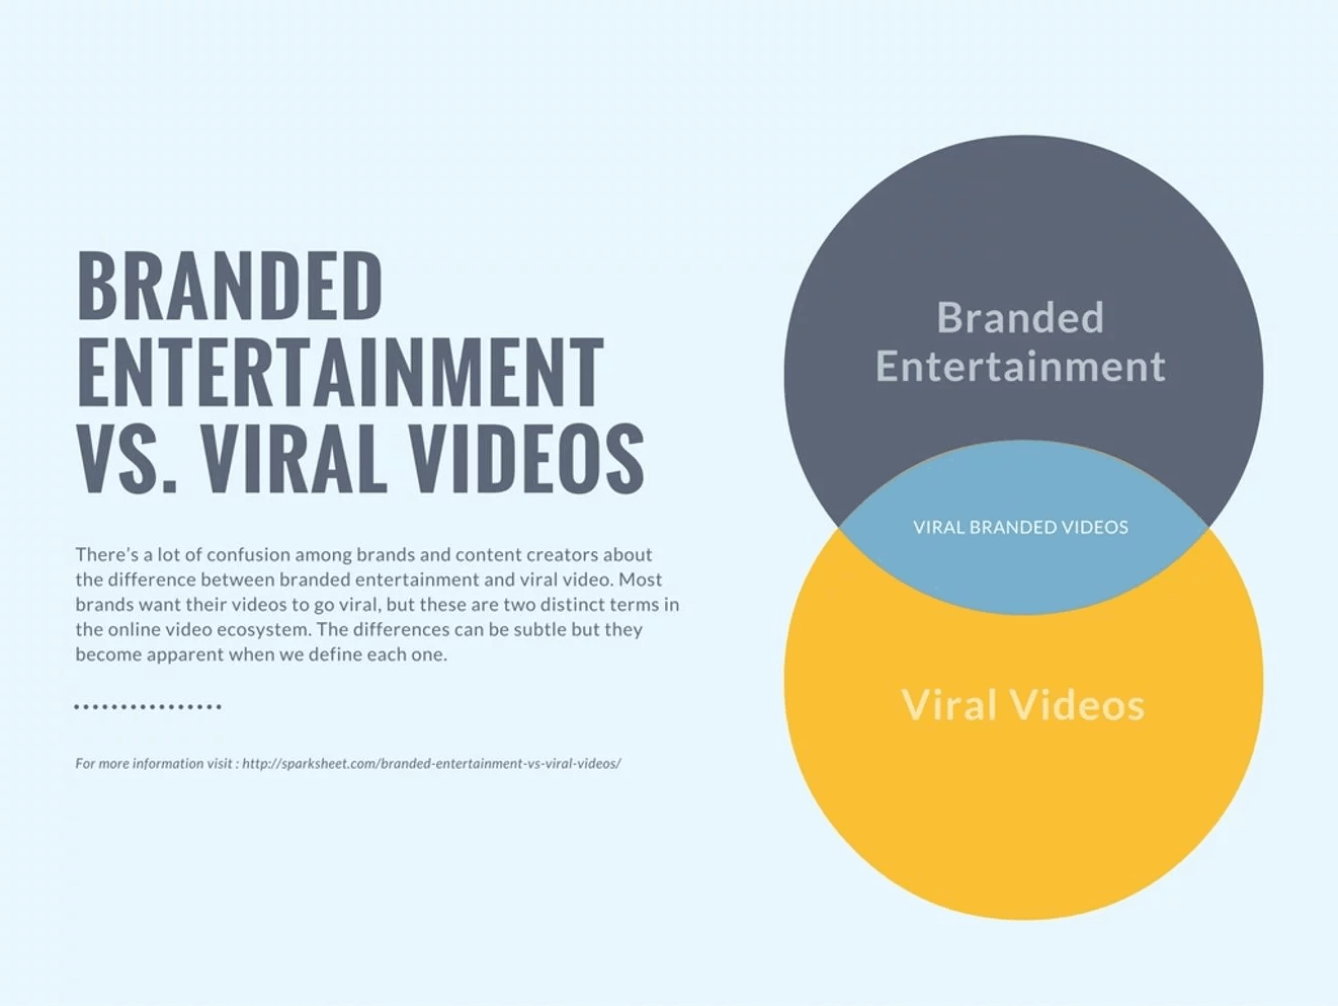 A Venn diagram example from Canva.